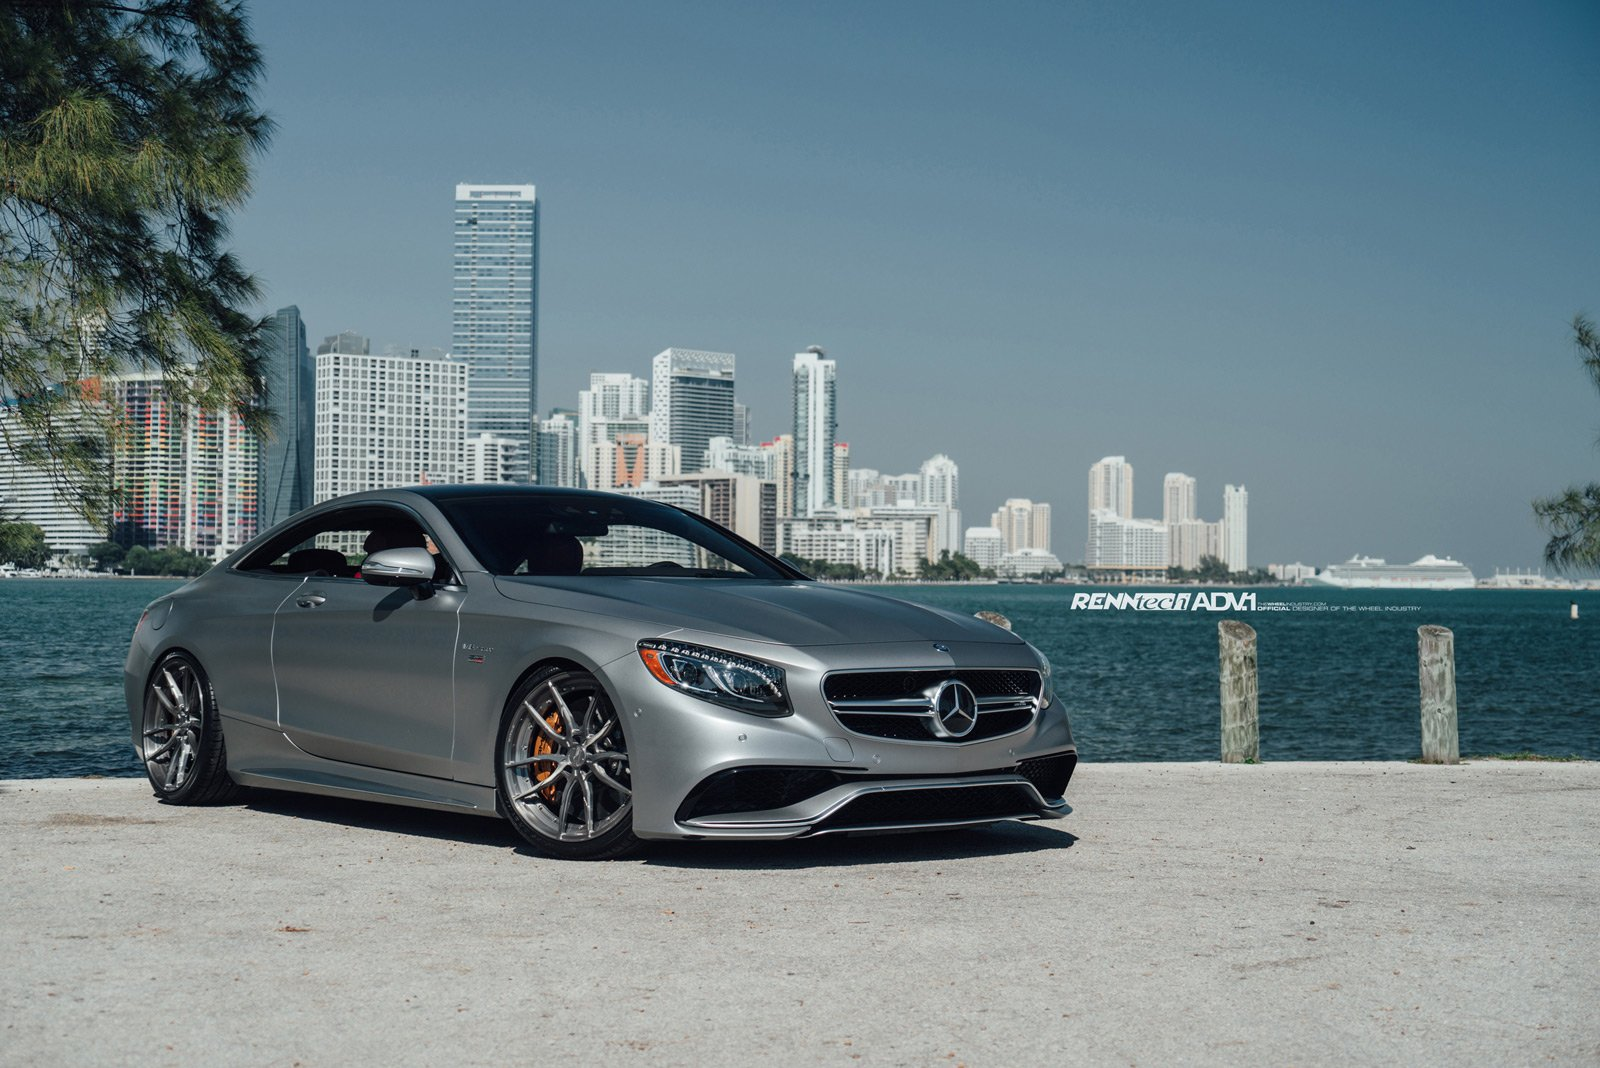 S 63 Amg Wallpaper: 2015 ADV1 Cars Coupe Tuning Wheels MERCEDES S63 AMG